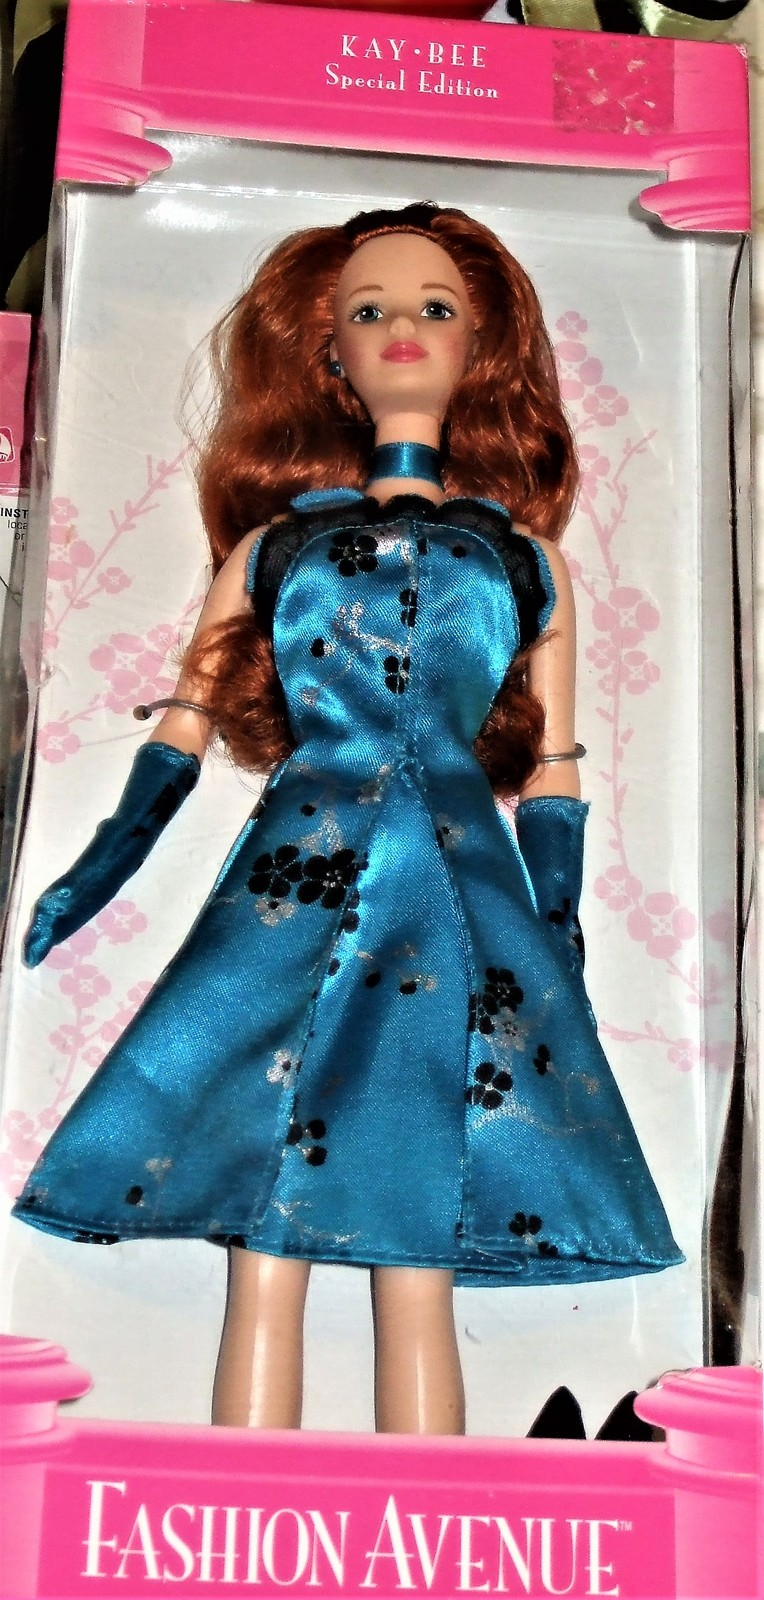 Barbie Doll - FASHION AVENUE Kay-Bee Special Ed (1998) Long Red Hair